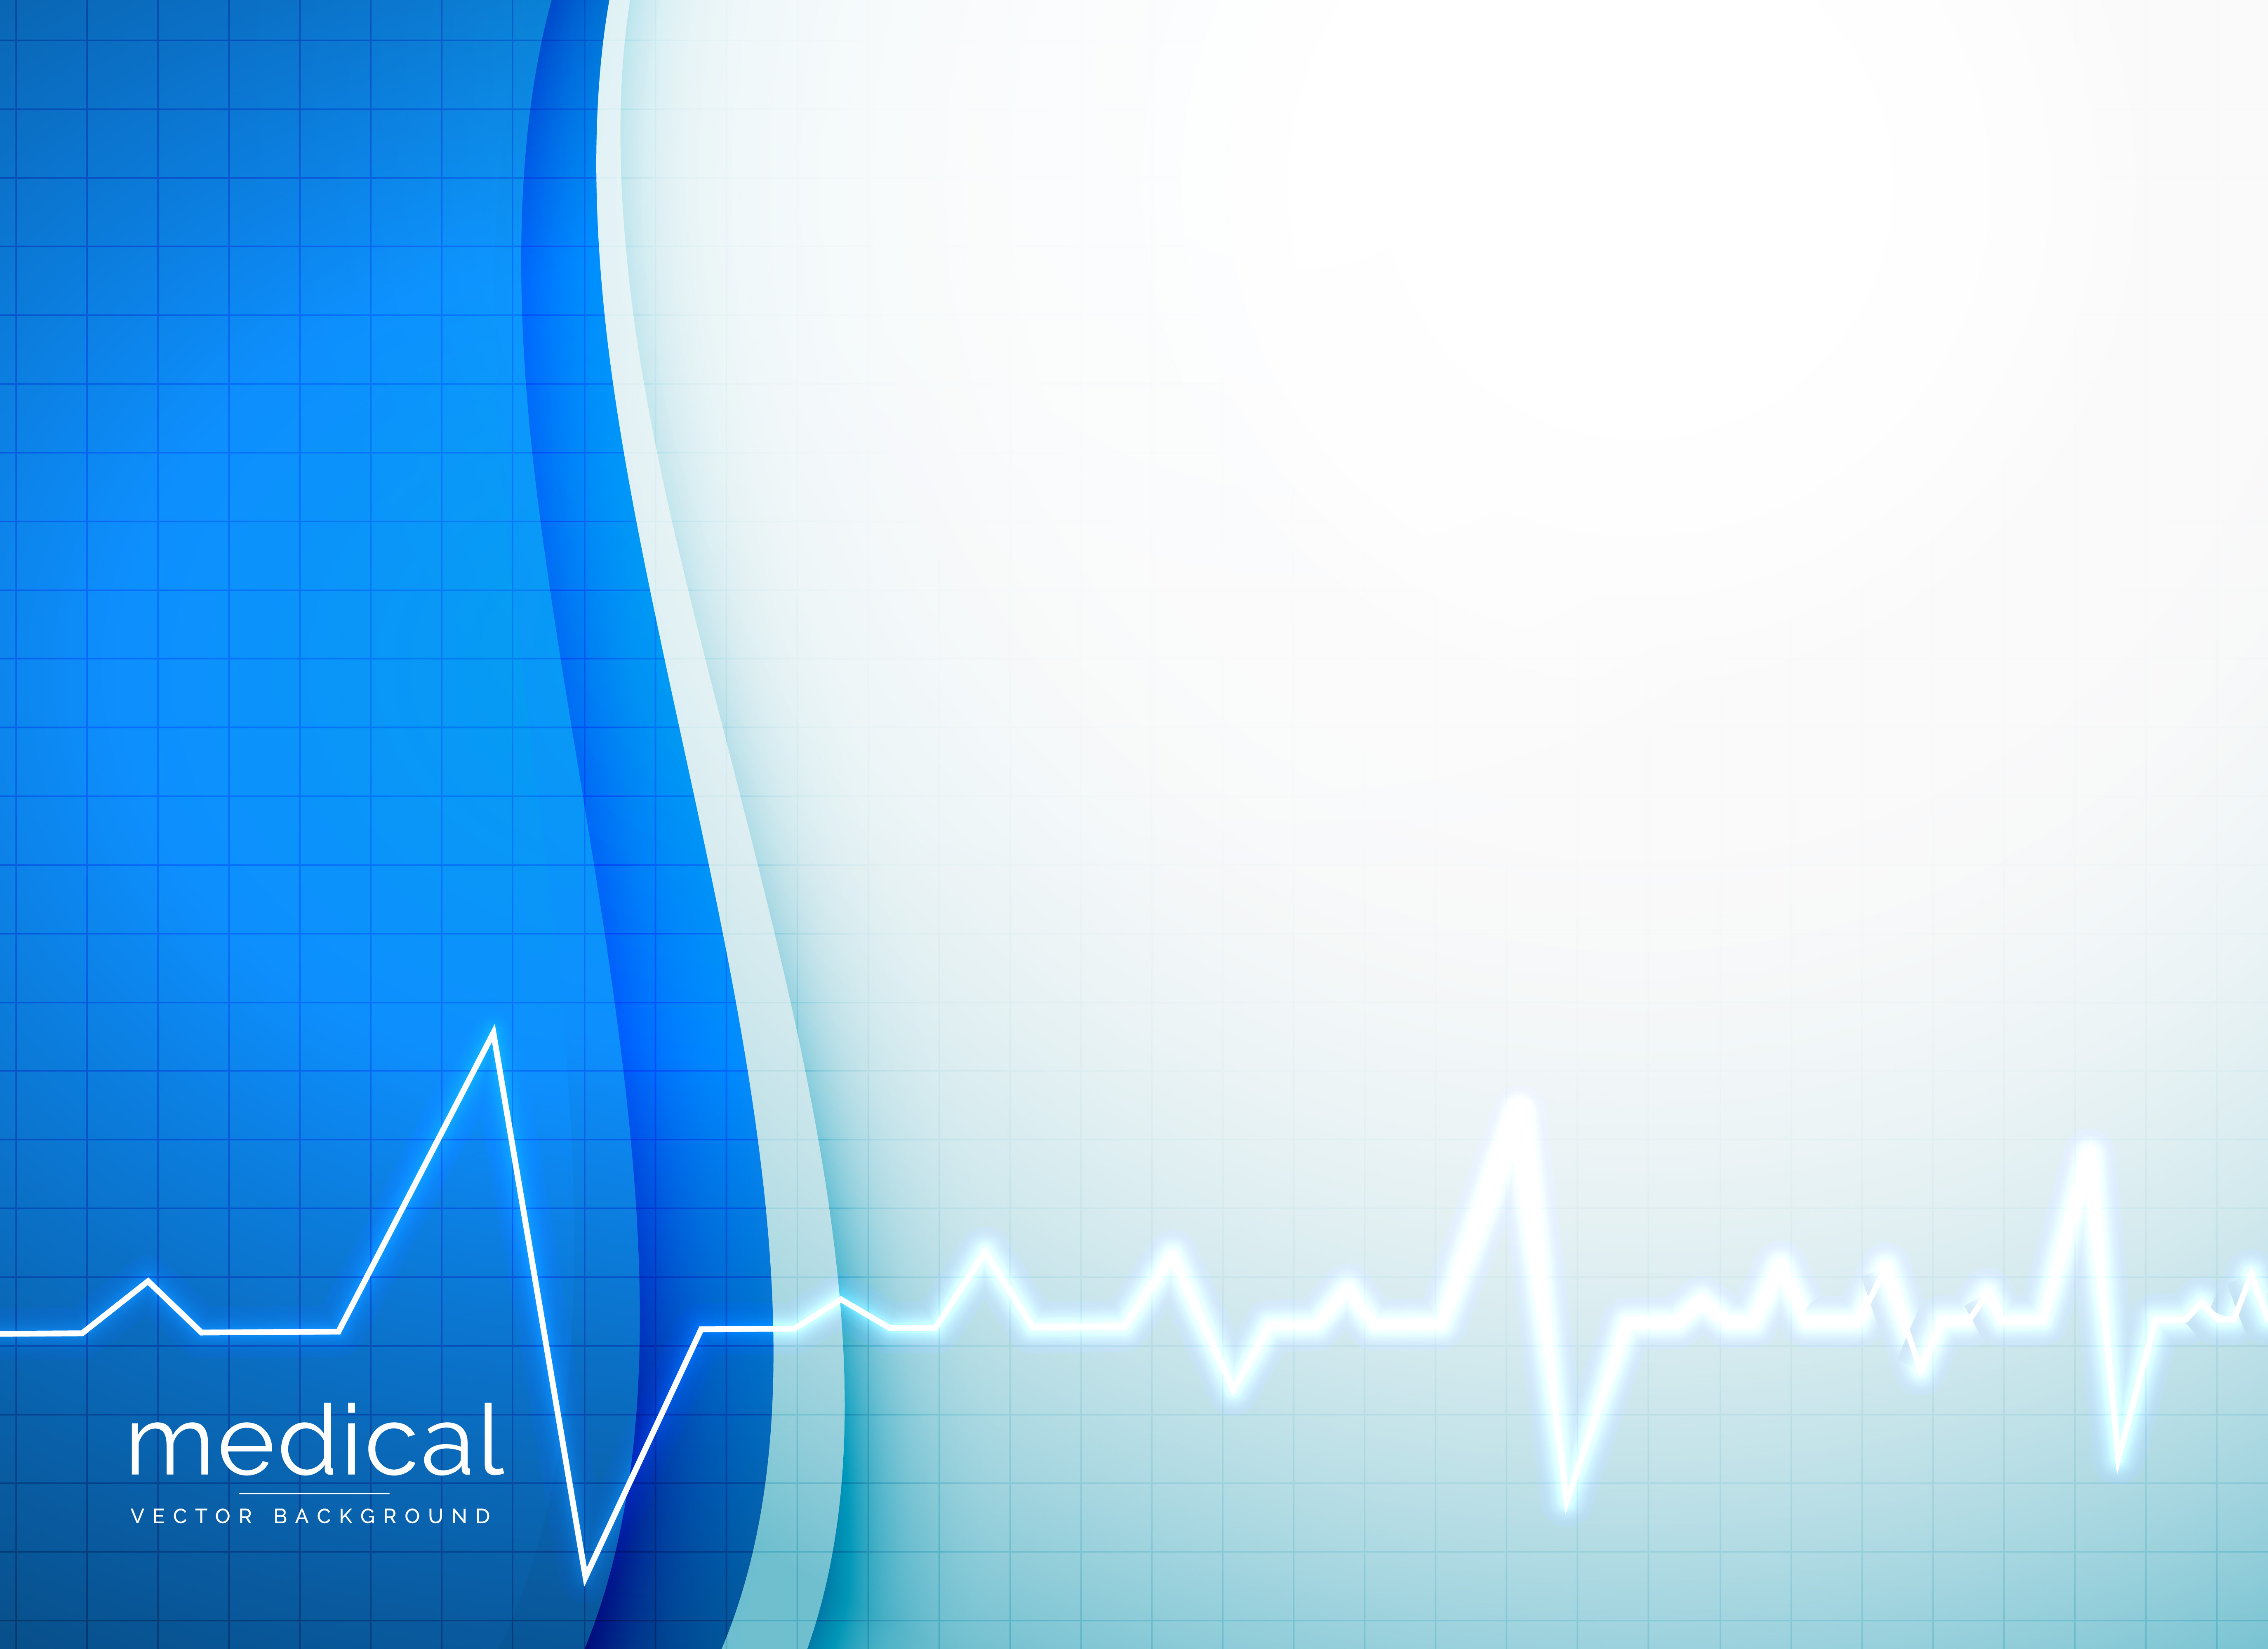 medical vector background with heartbeat line download